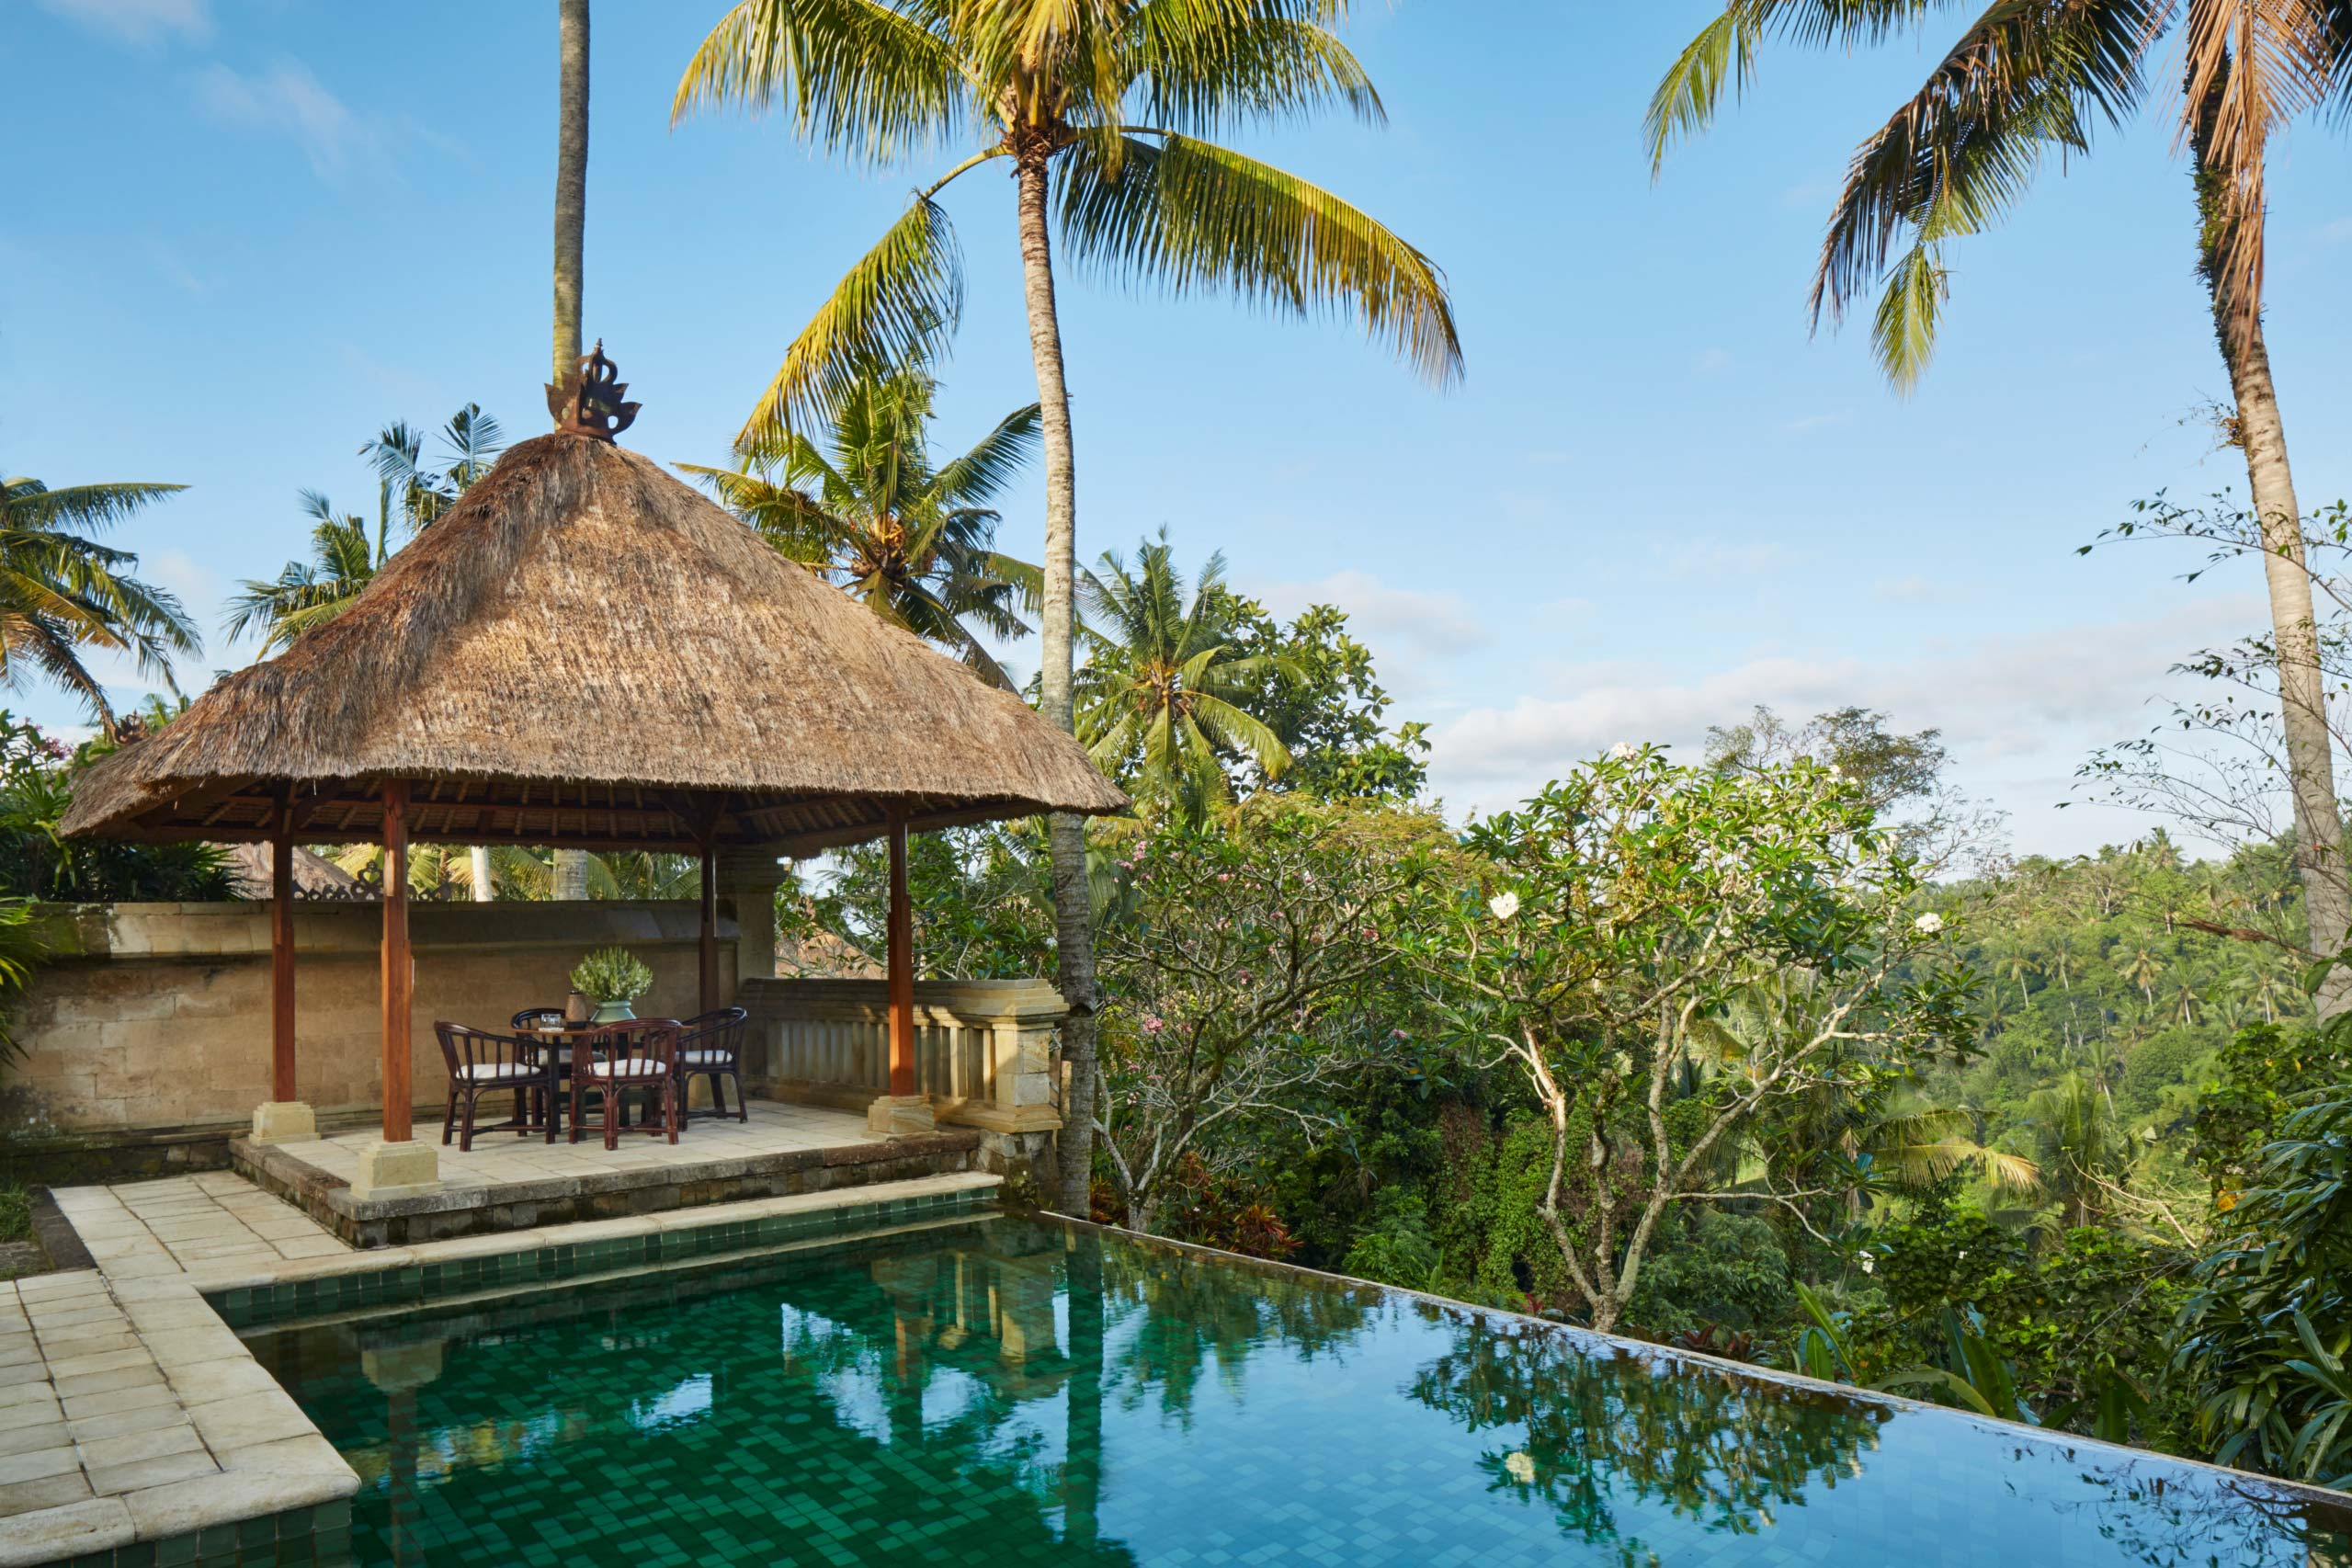 Ubud's Amandari Will Leave You Totally Zened out – Just Ask Victoria Beckham